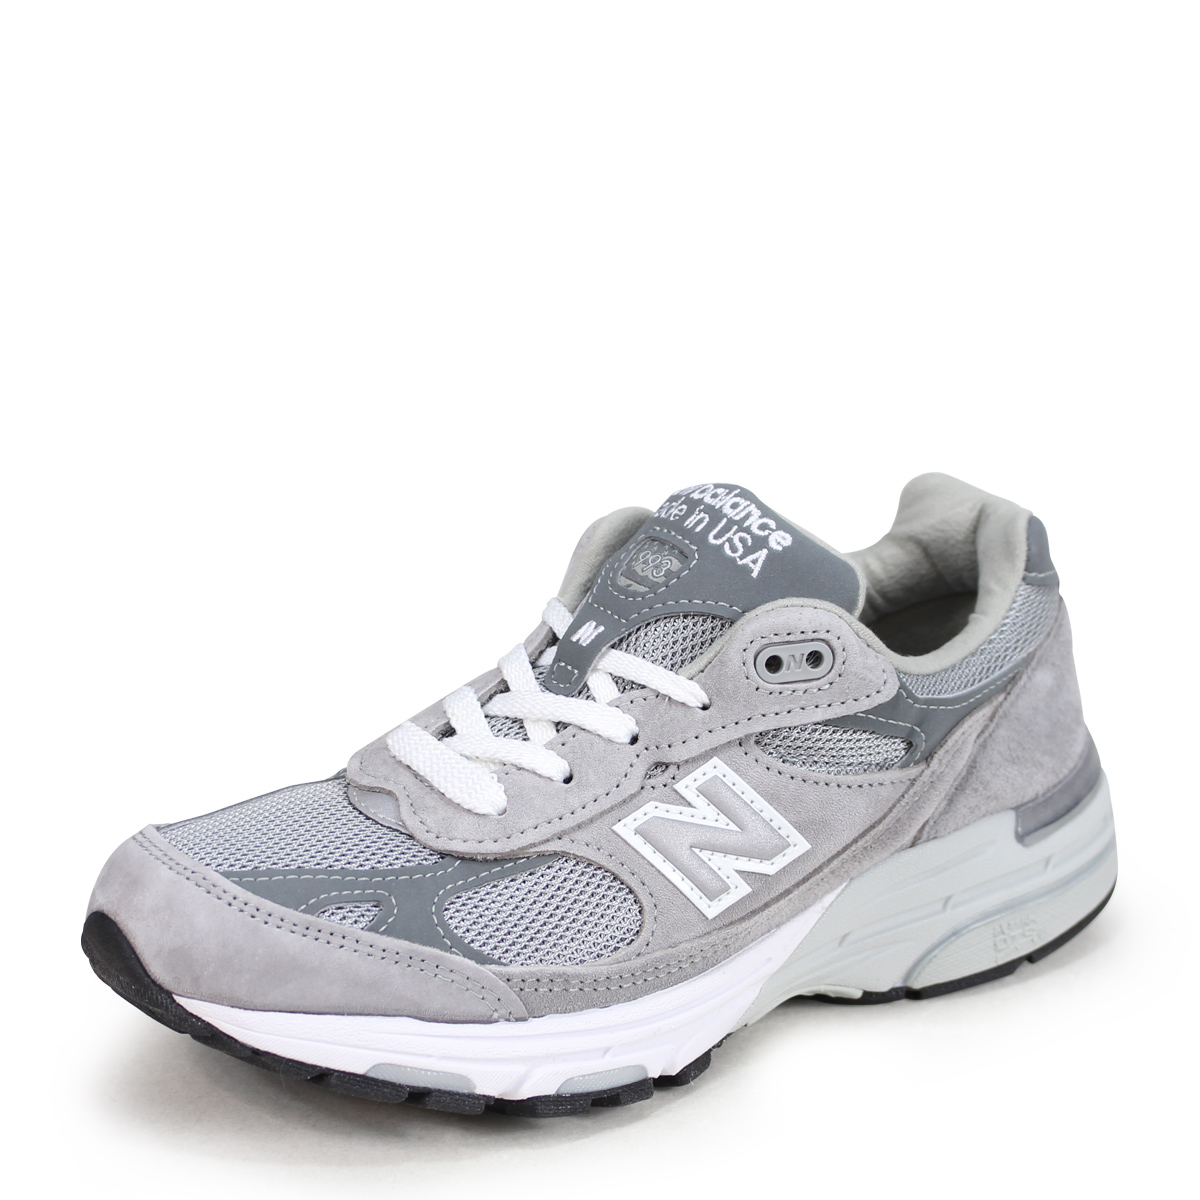 new style 2c5a5 cbdf1 new balance WR993GL New Balance sneakers gray D Wise suede mesh Made in USA  suede cloth Lady's men [196]